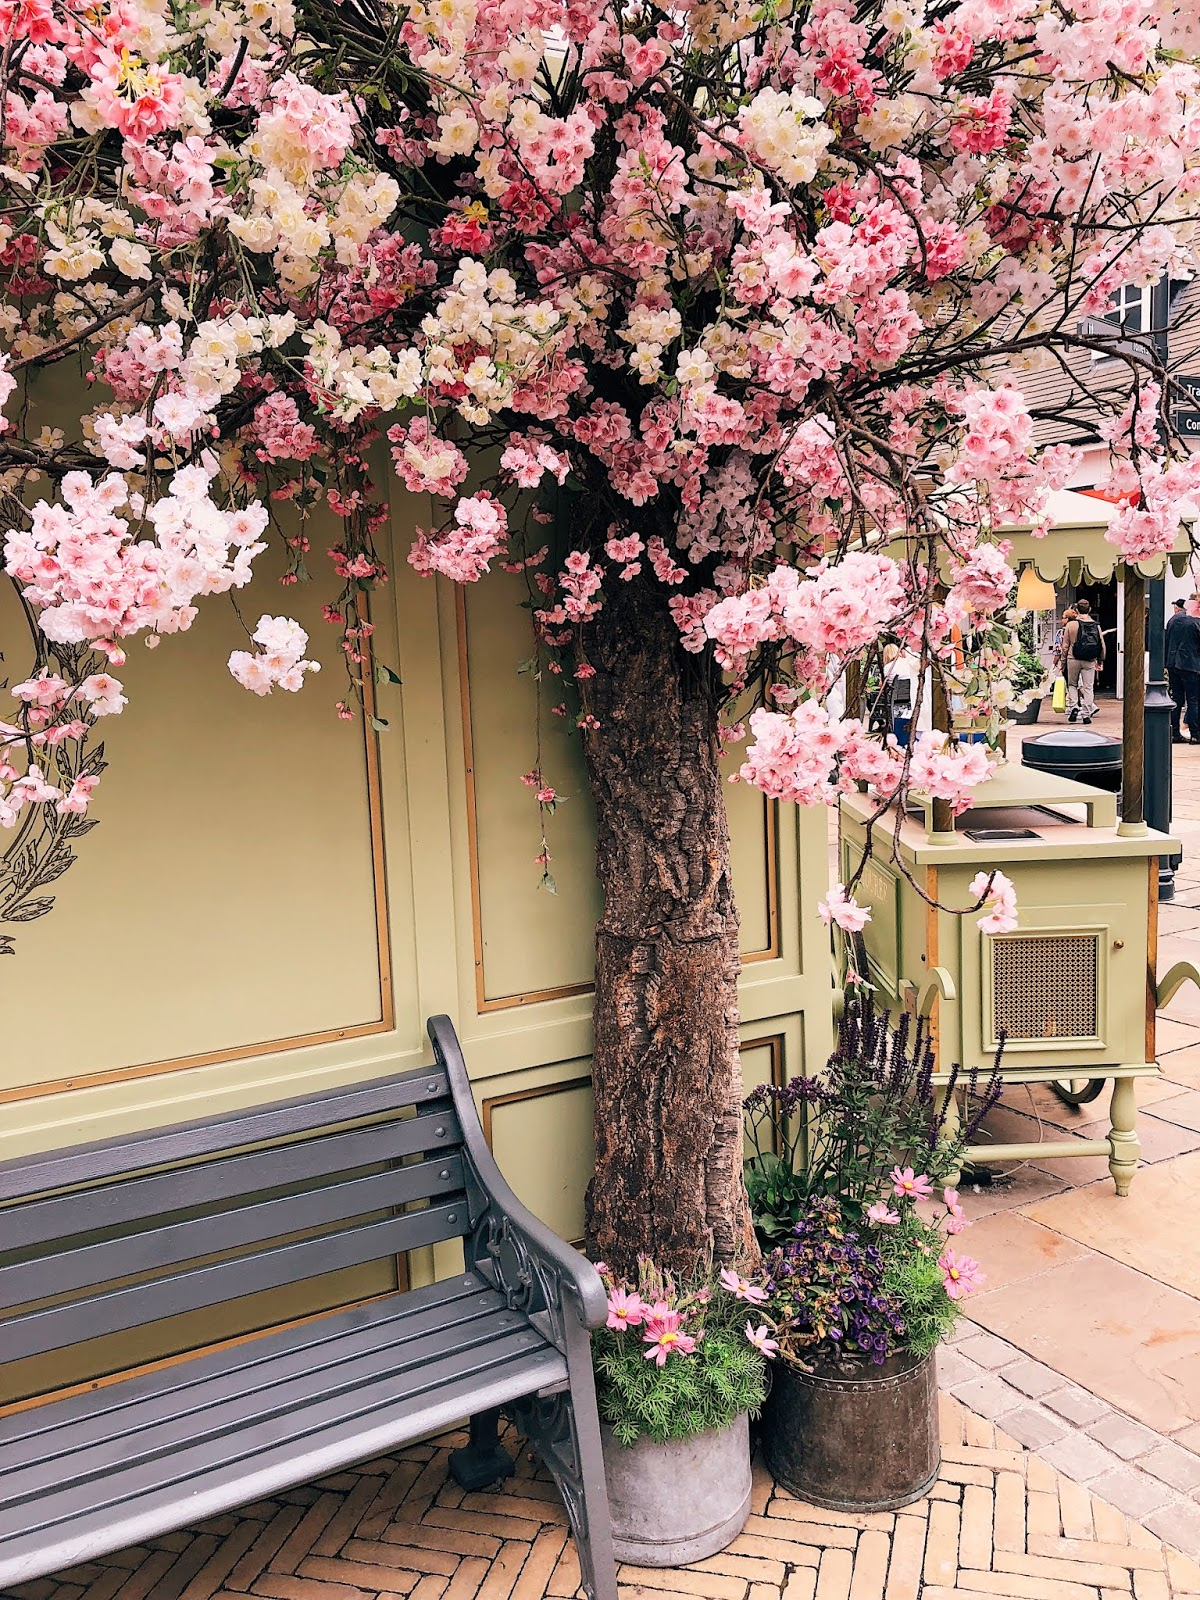 bicester village tips, shopping tips, bicester village, bicester, shopping complex in UK, designer shopping in uk, instagrammable places uk, indian blogger, london blogger, uk blogger, flower decoration england,